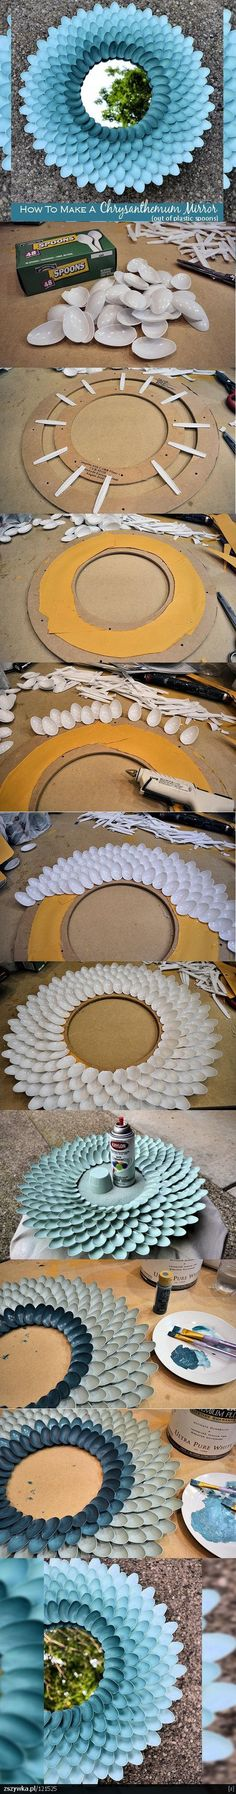 plastic spoons into chrysanthemum mirror